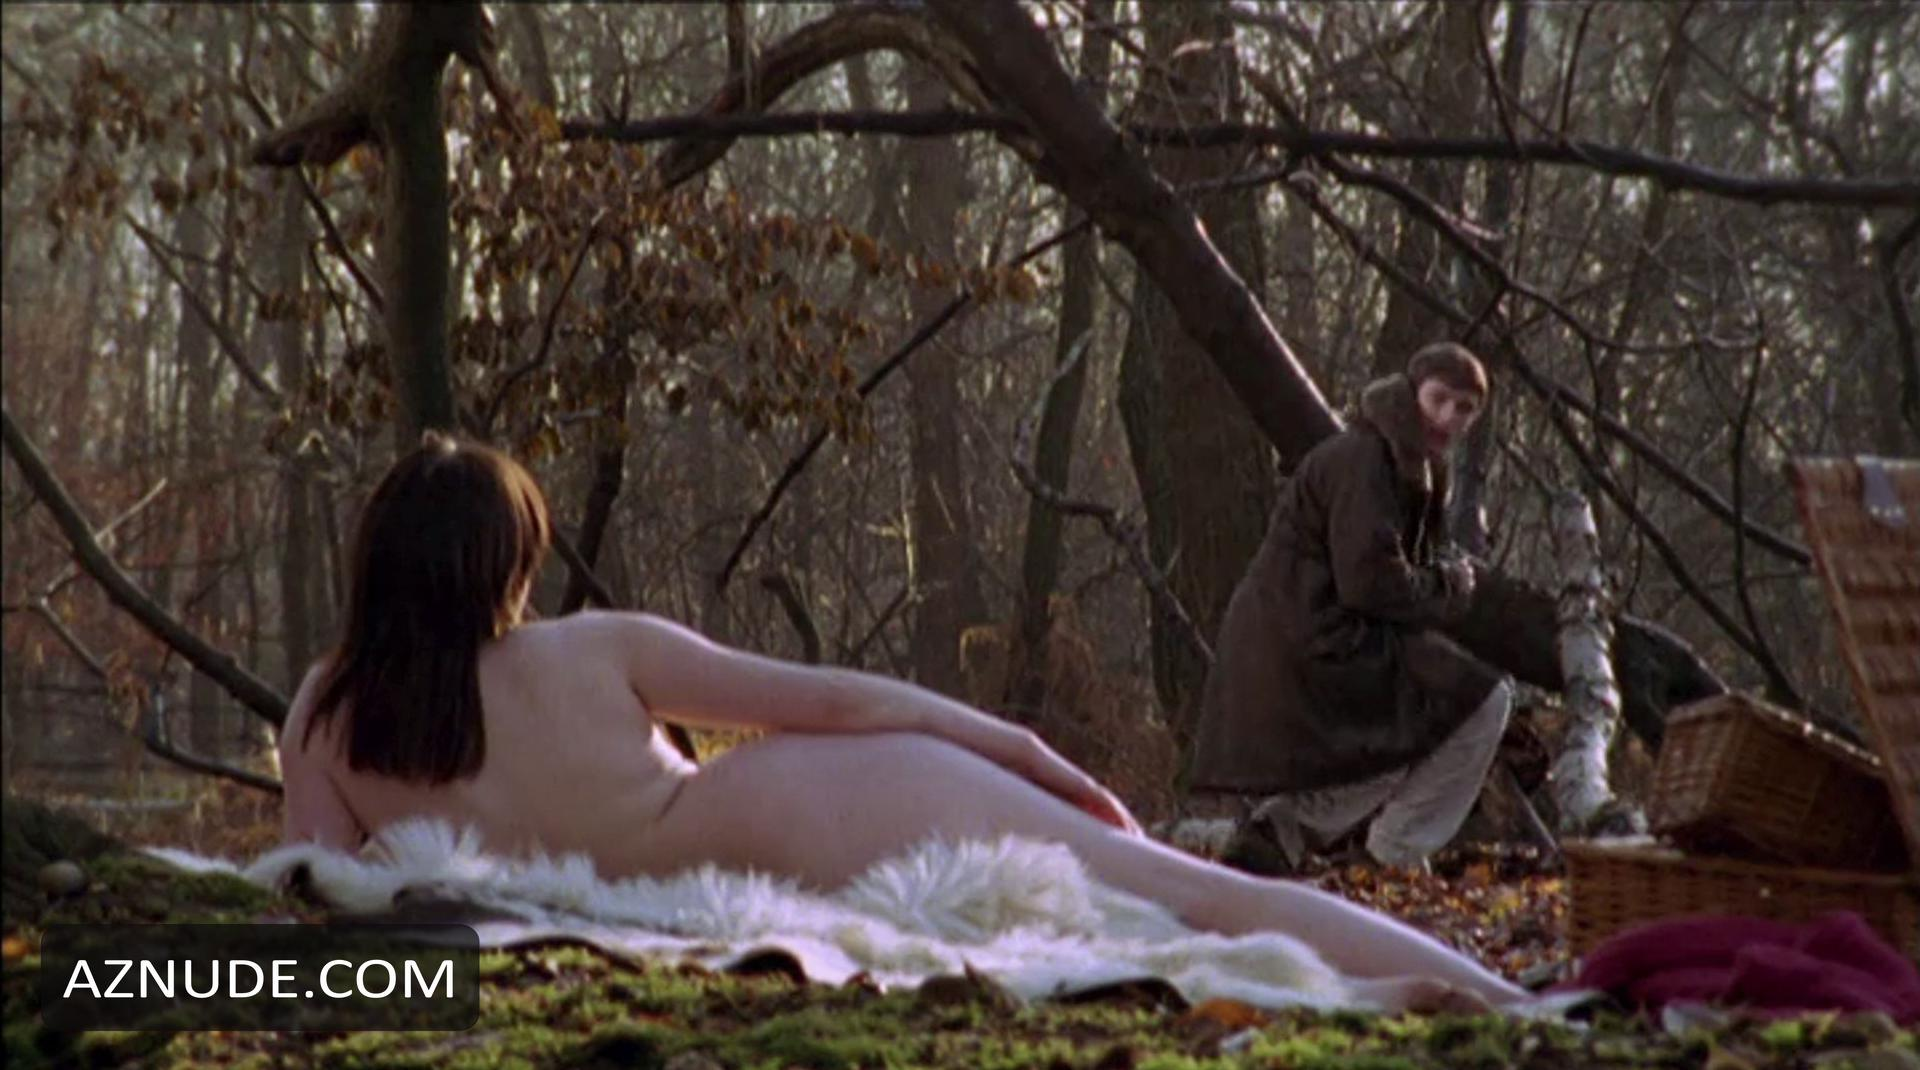 scarlett johansson naked in what movies